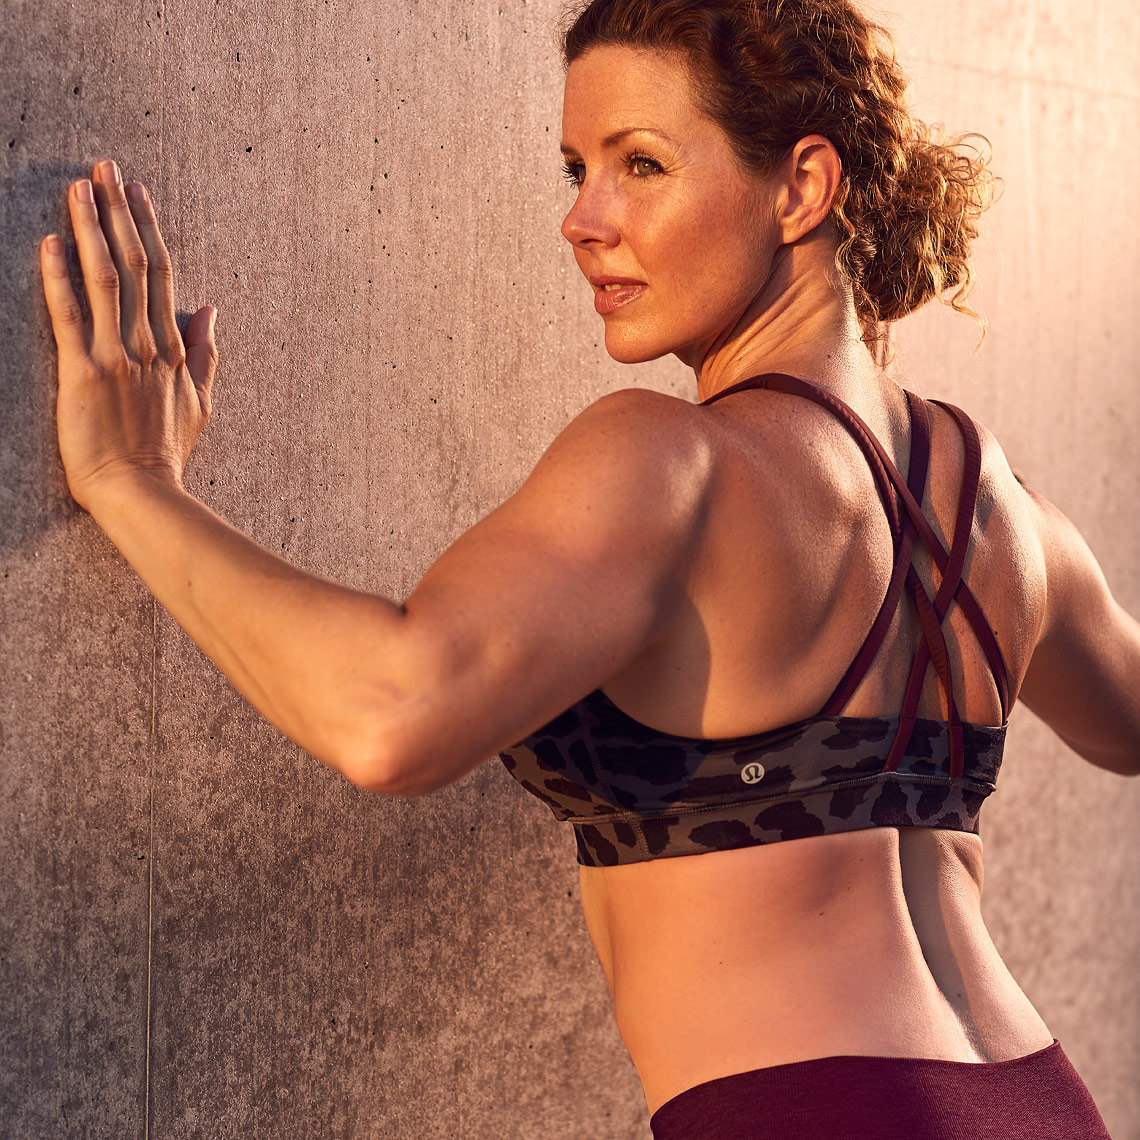 Womens_Fitness_Portrait_1